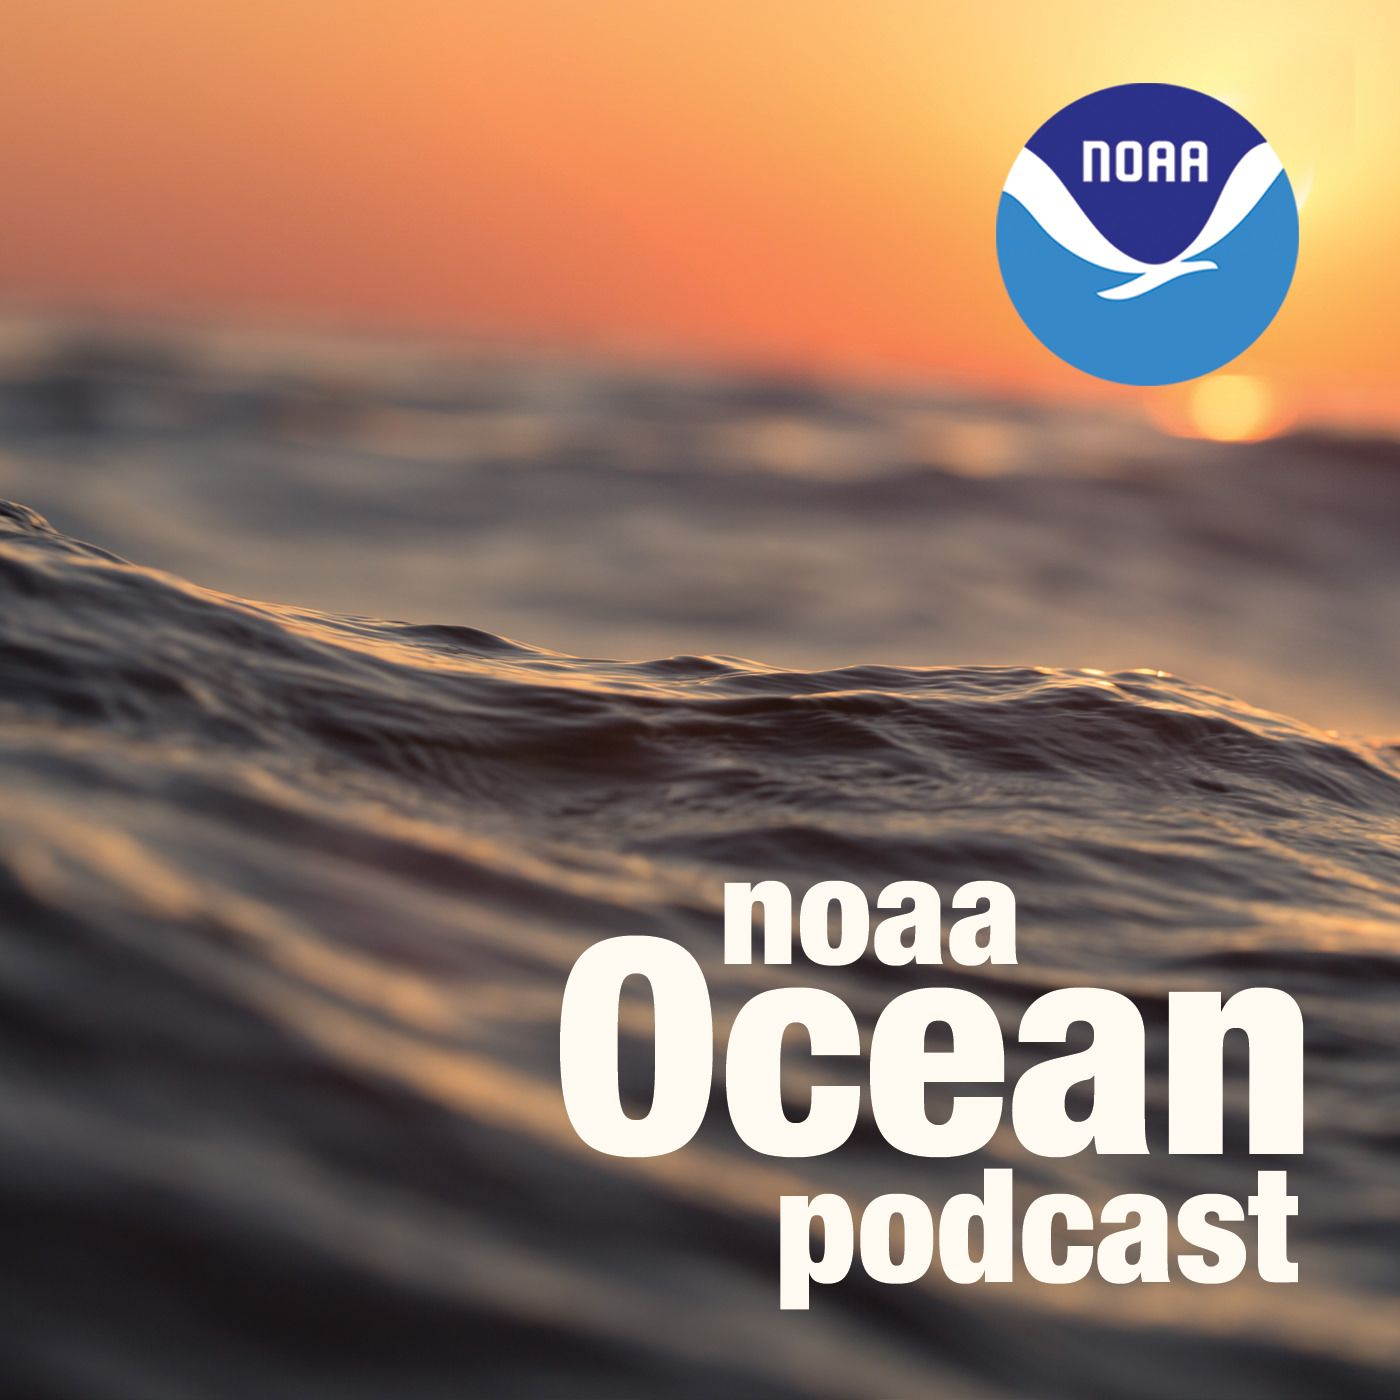 NOAA Ocean podcast icon